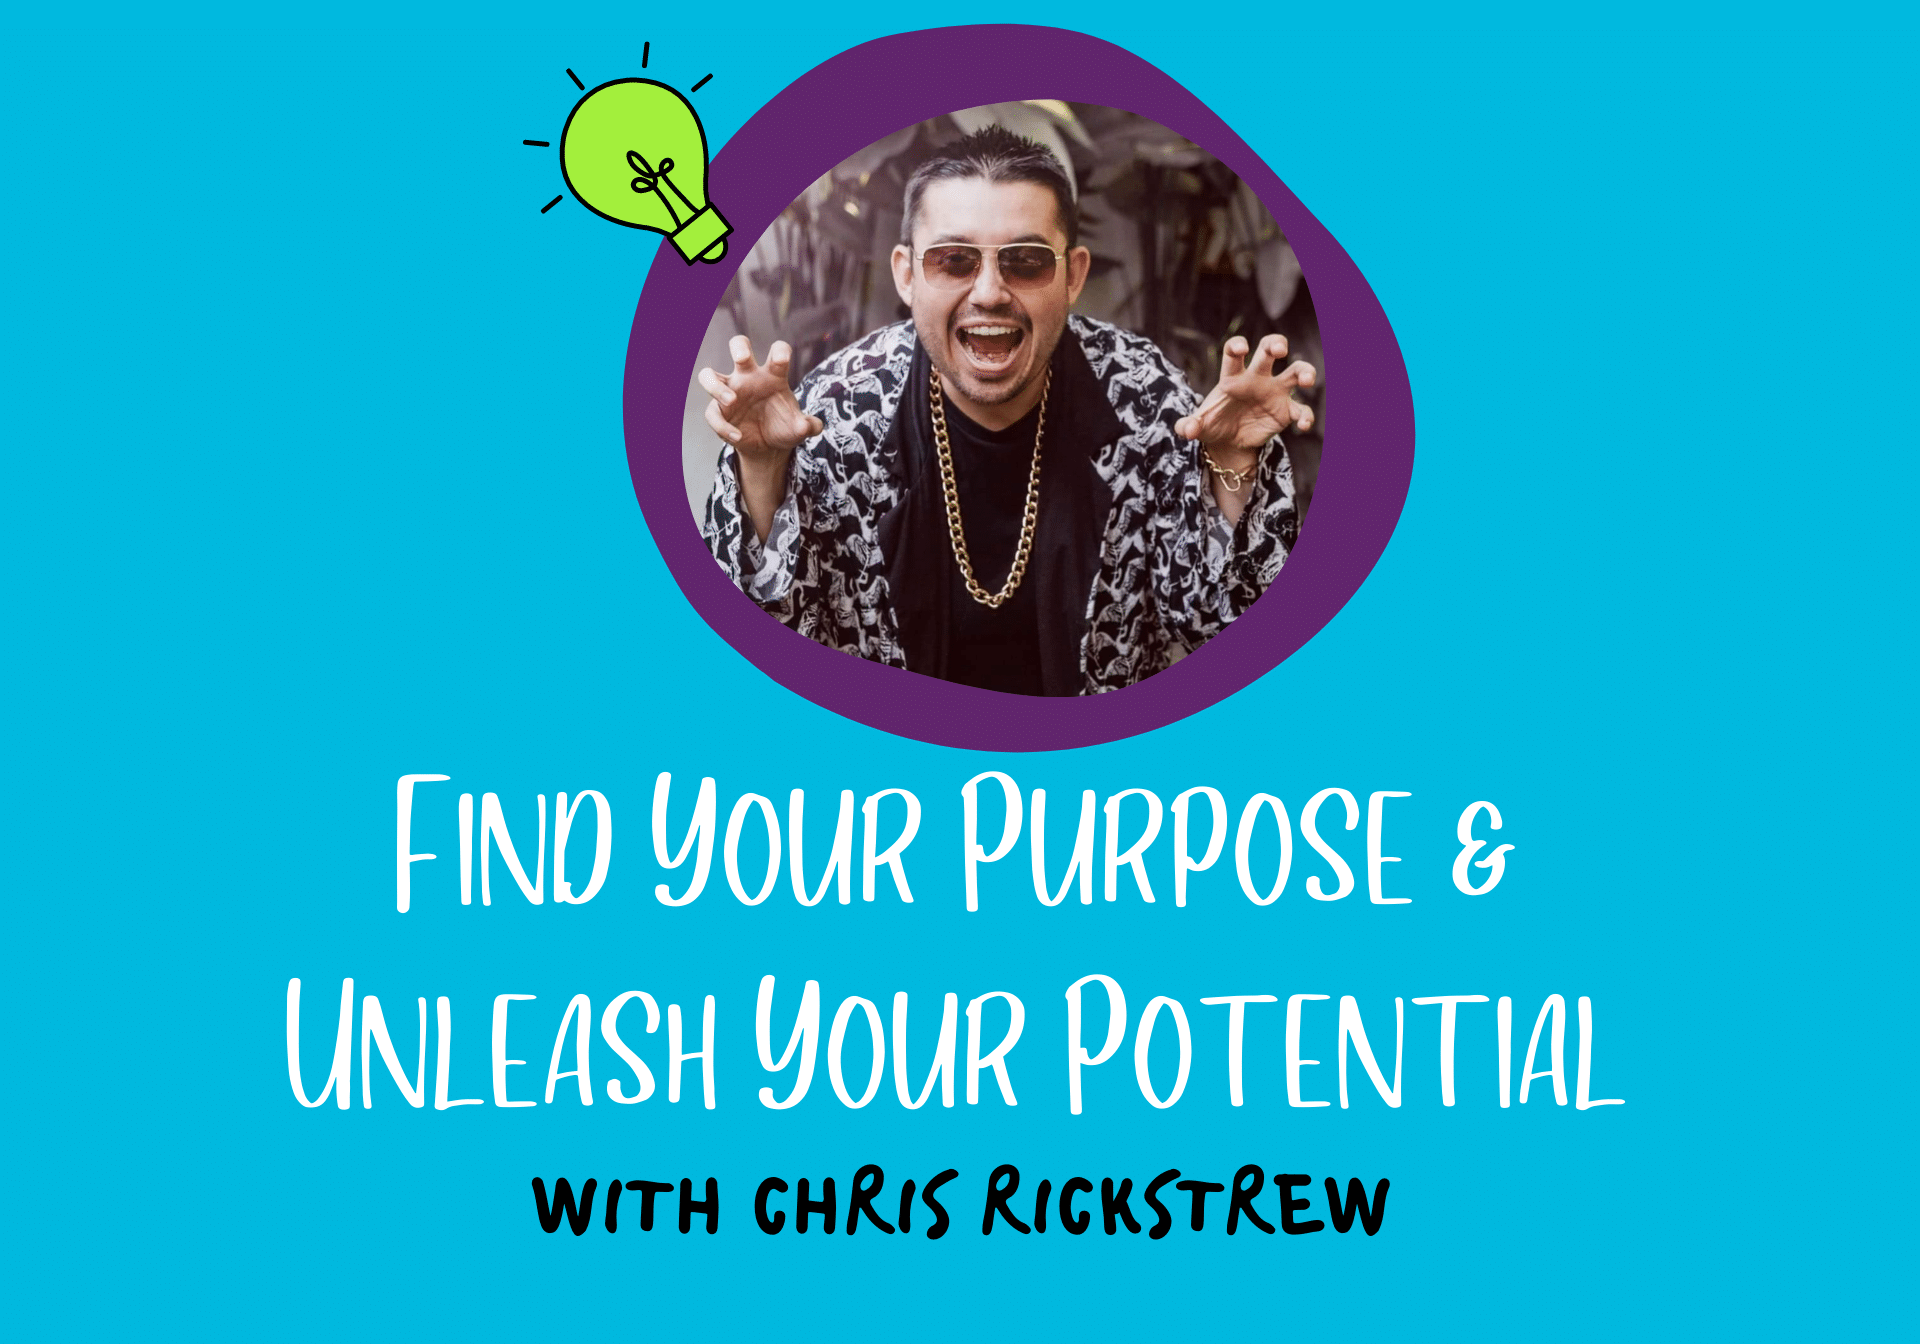 Find Your Purpose And Unleash Your Potential With Chris Rickstrew